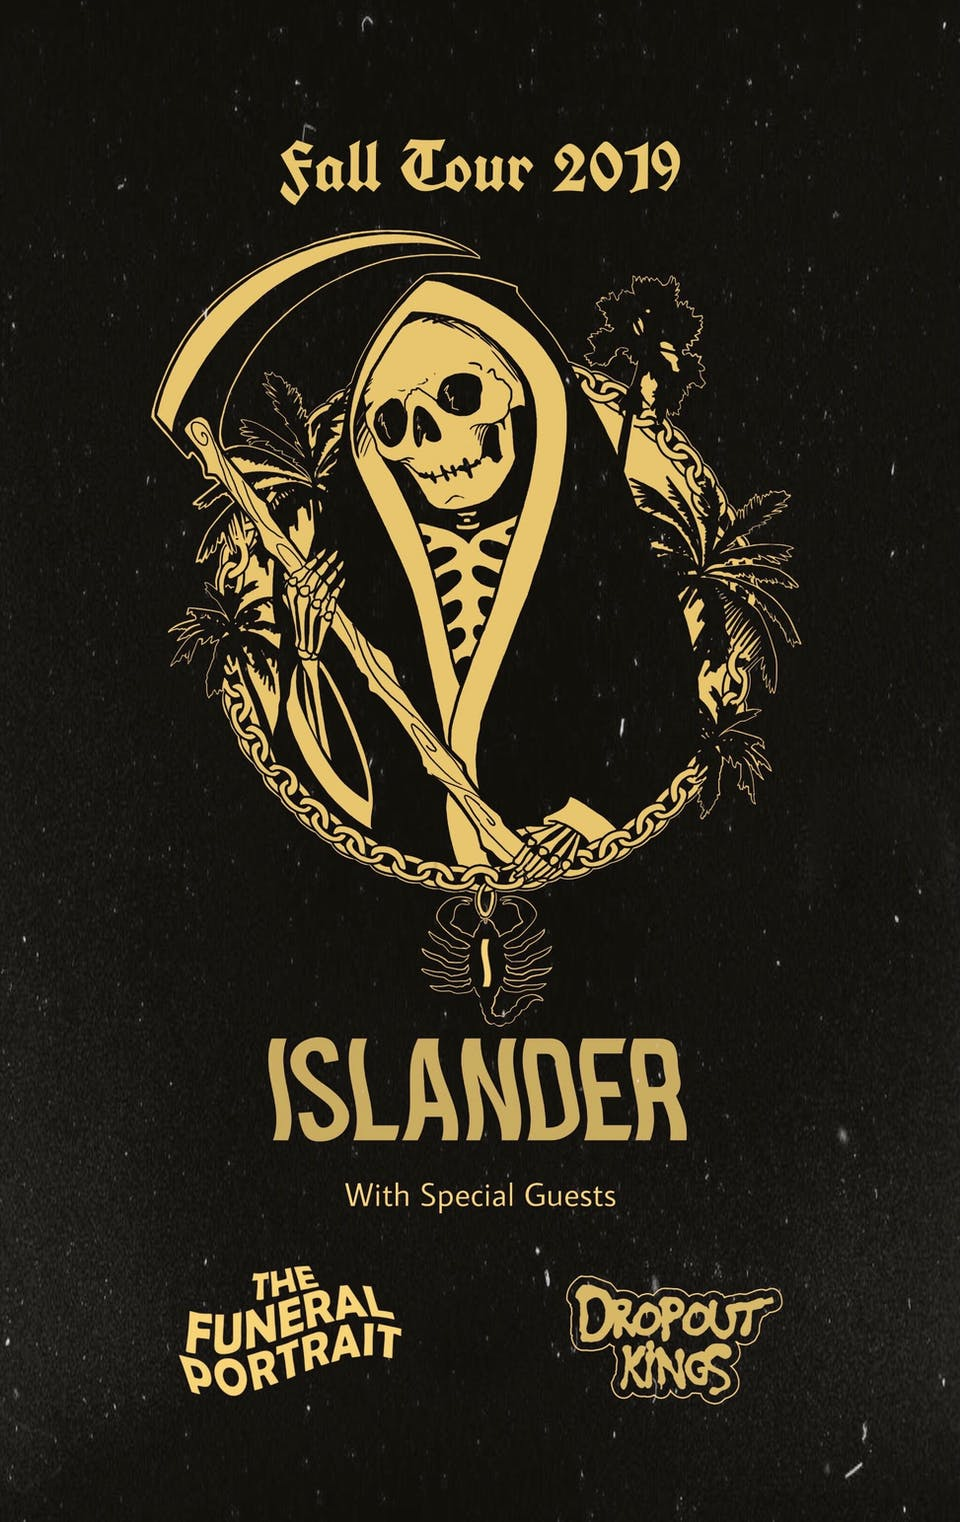 Islander, The Funeral Portrait, Dropout Kings